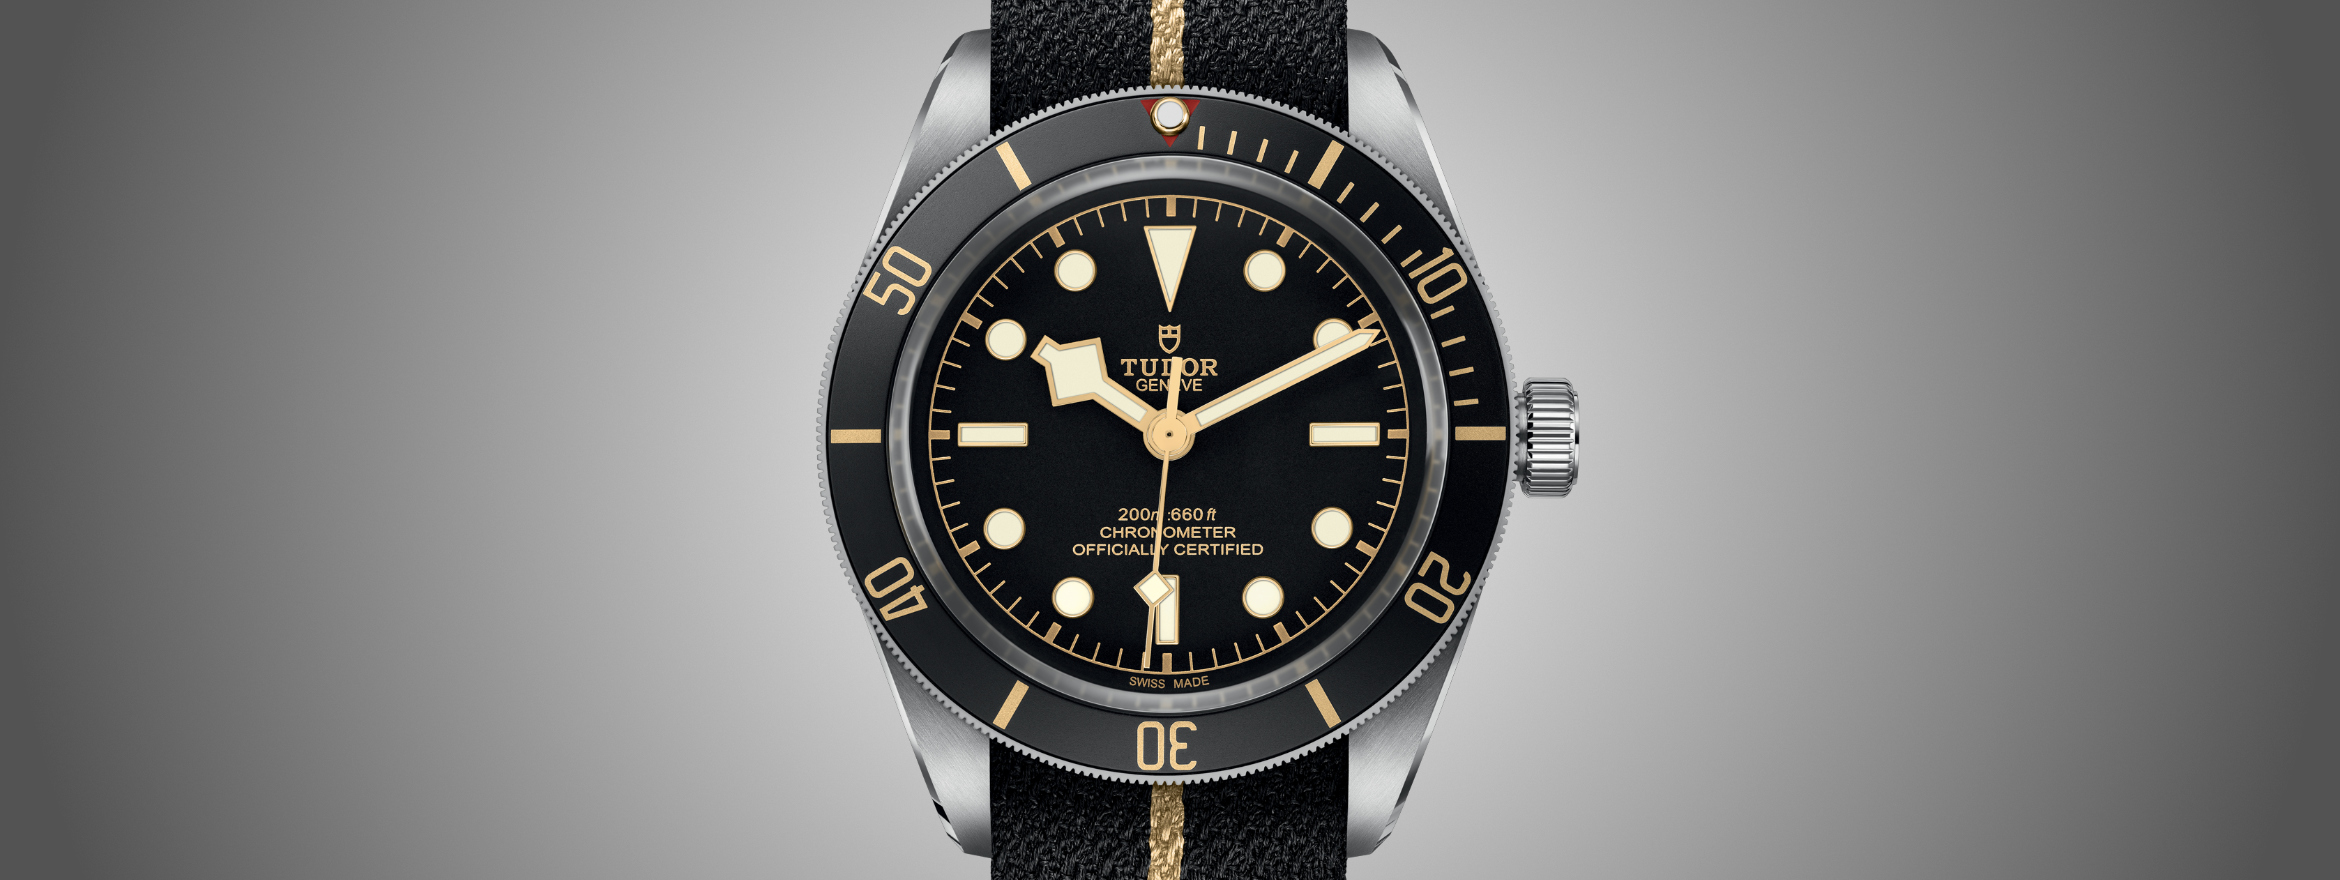 hot sales 8608a dad7c Shields and Roses - Looking at Iconic Modern Tudor Watches - The Hour Glass